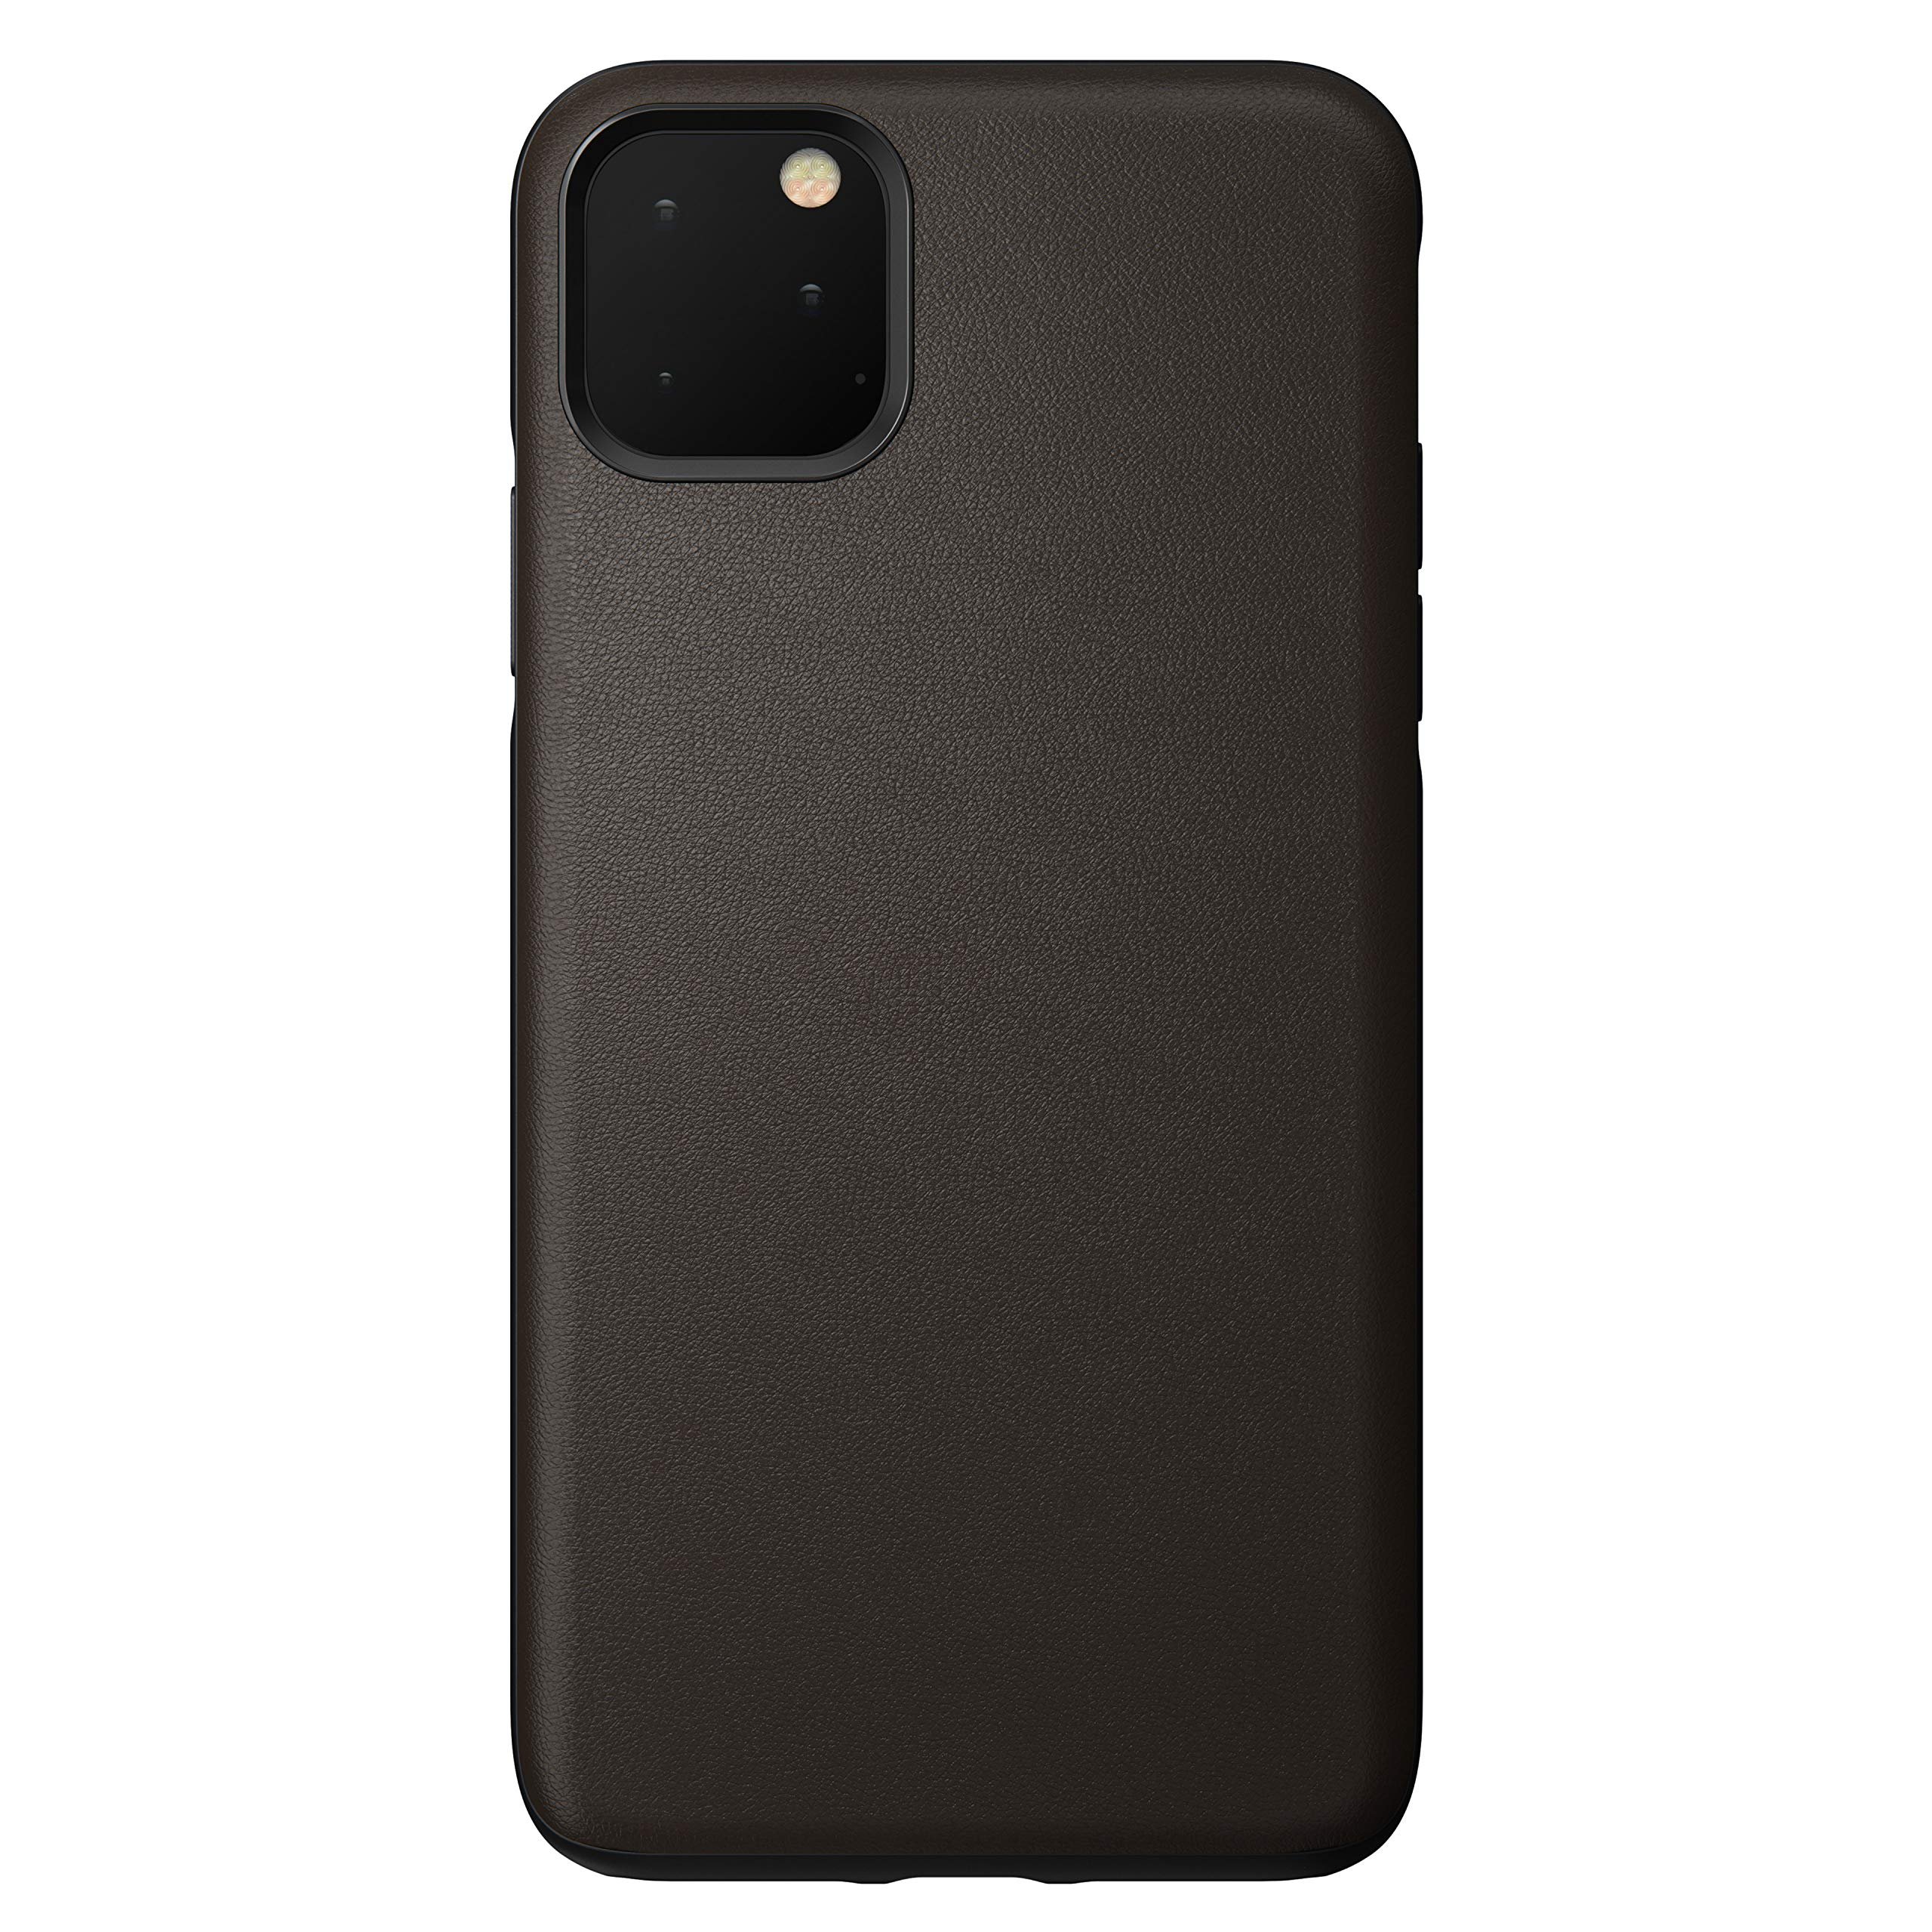 Nomad Rugged Case for iPhone 11 Pro Max | Mocha Brown Heinen Active Leather